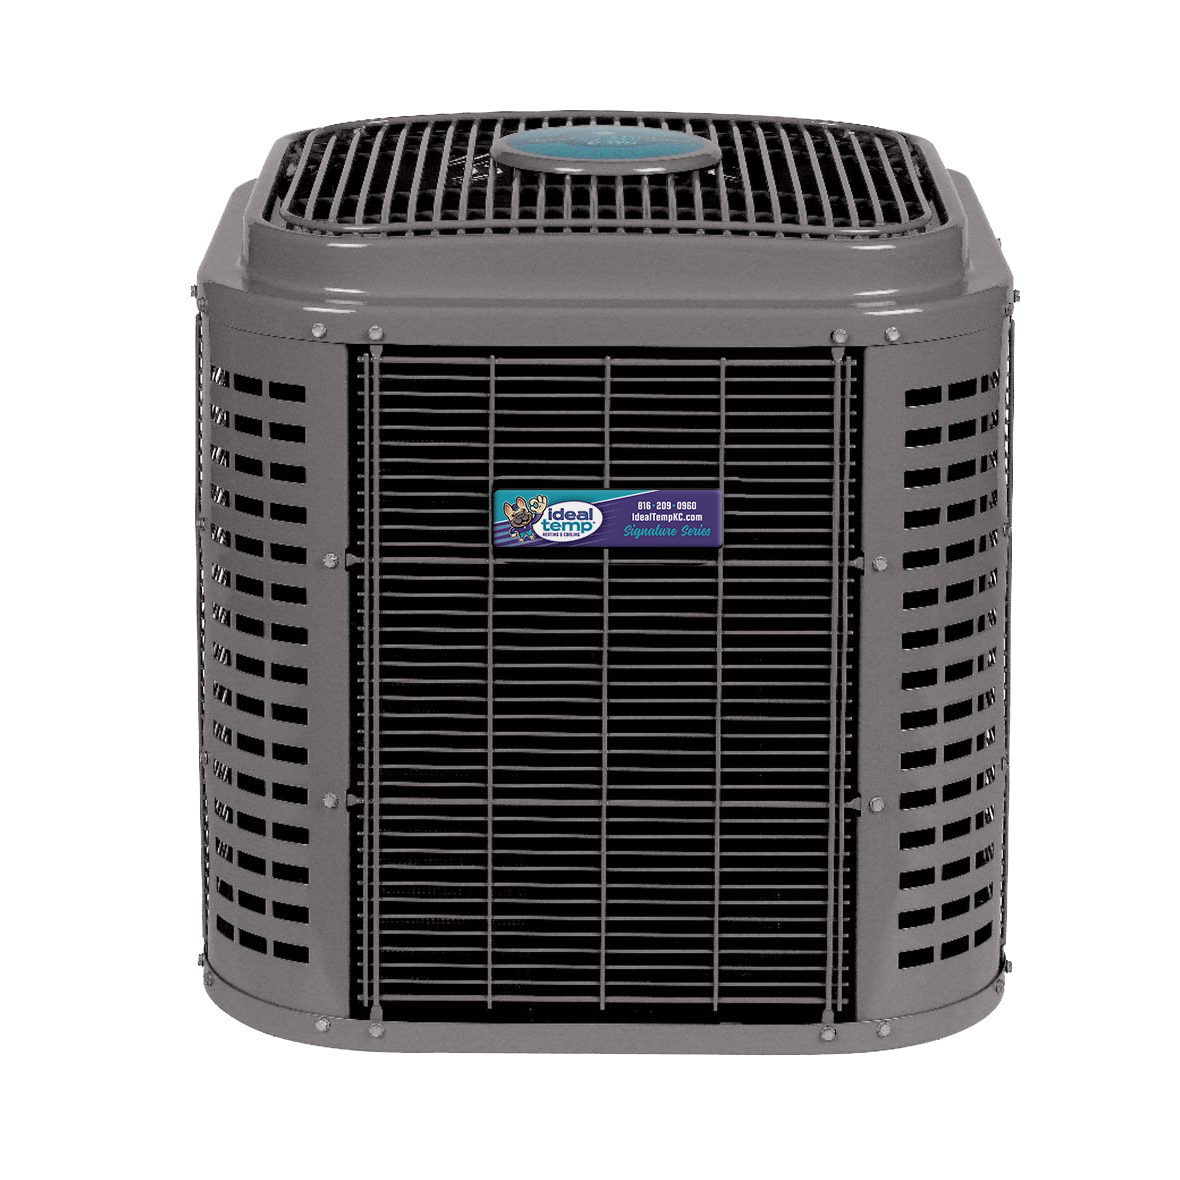 ION System CCA7 Air conditioning unit